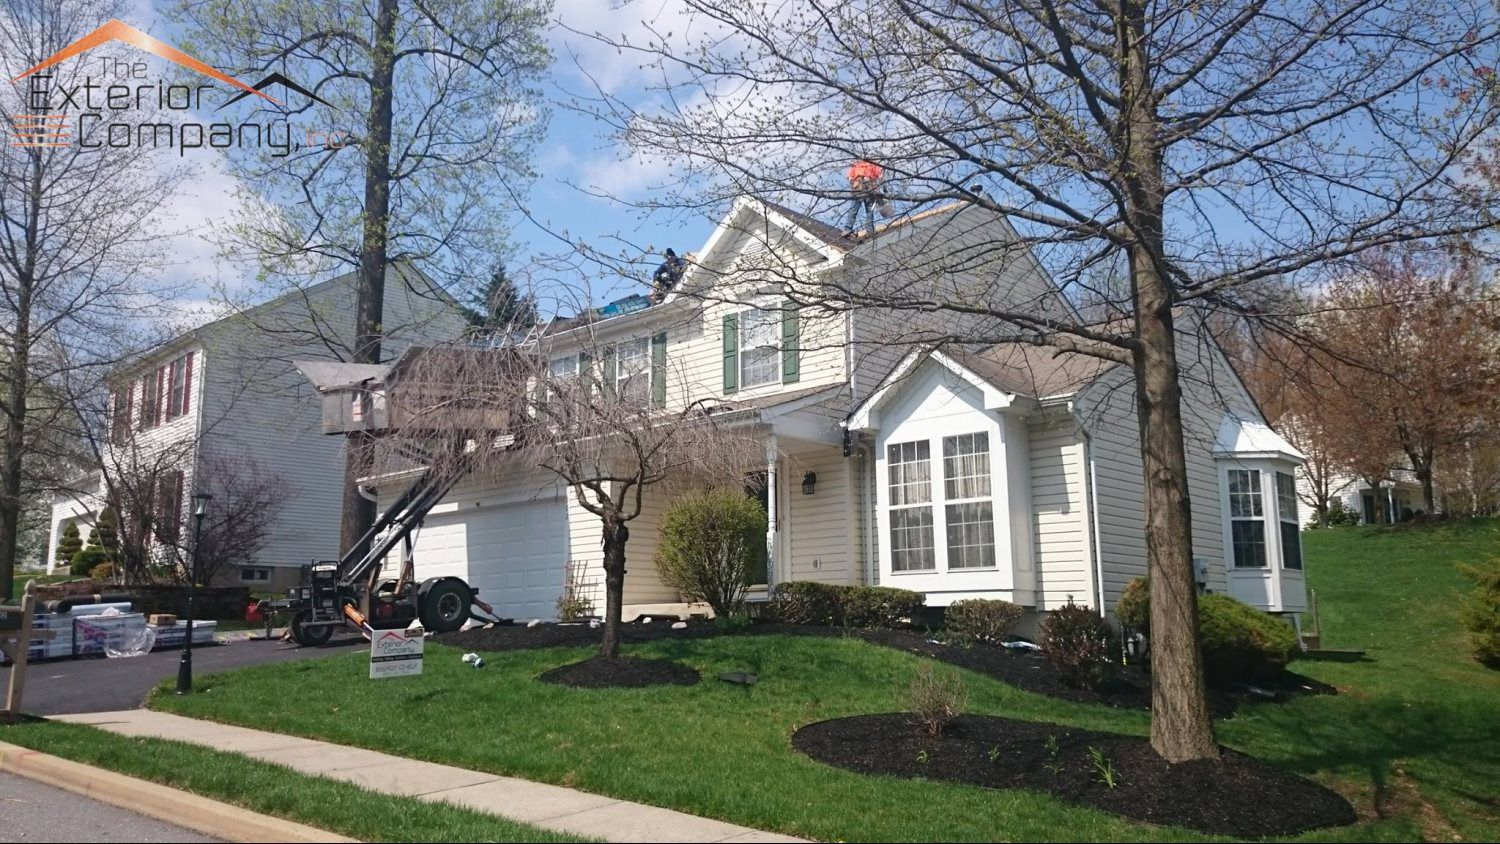 PROFESSIONAL ROOFING REPAIR AND REPLACEMENT